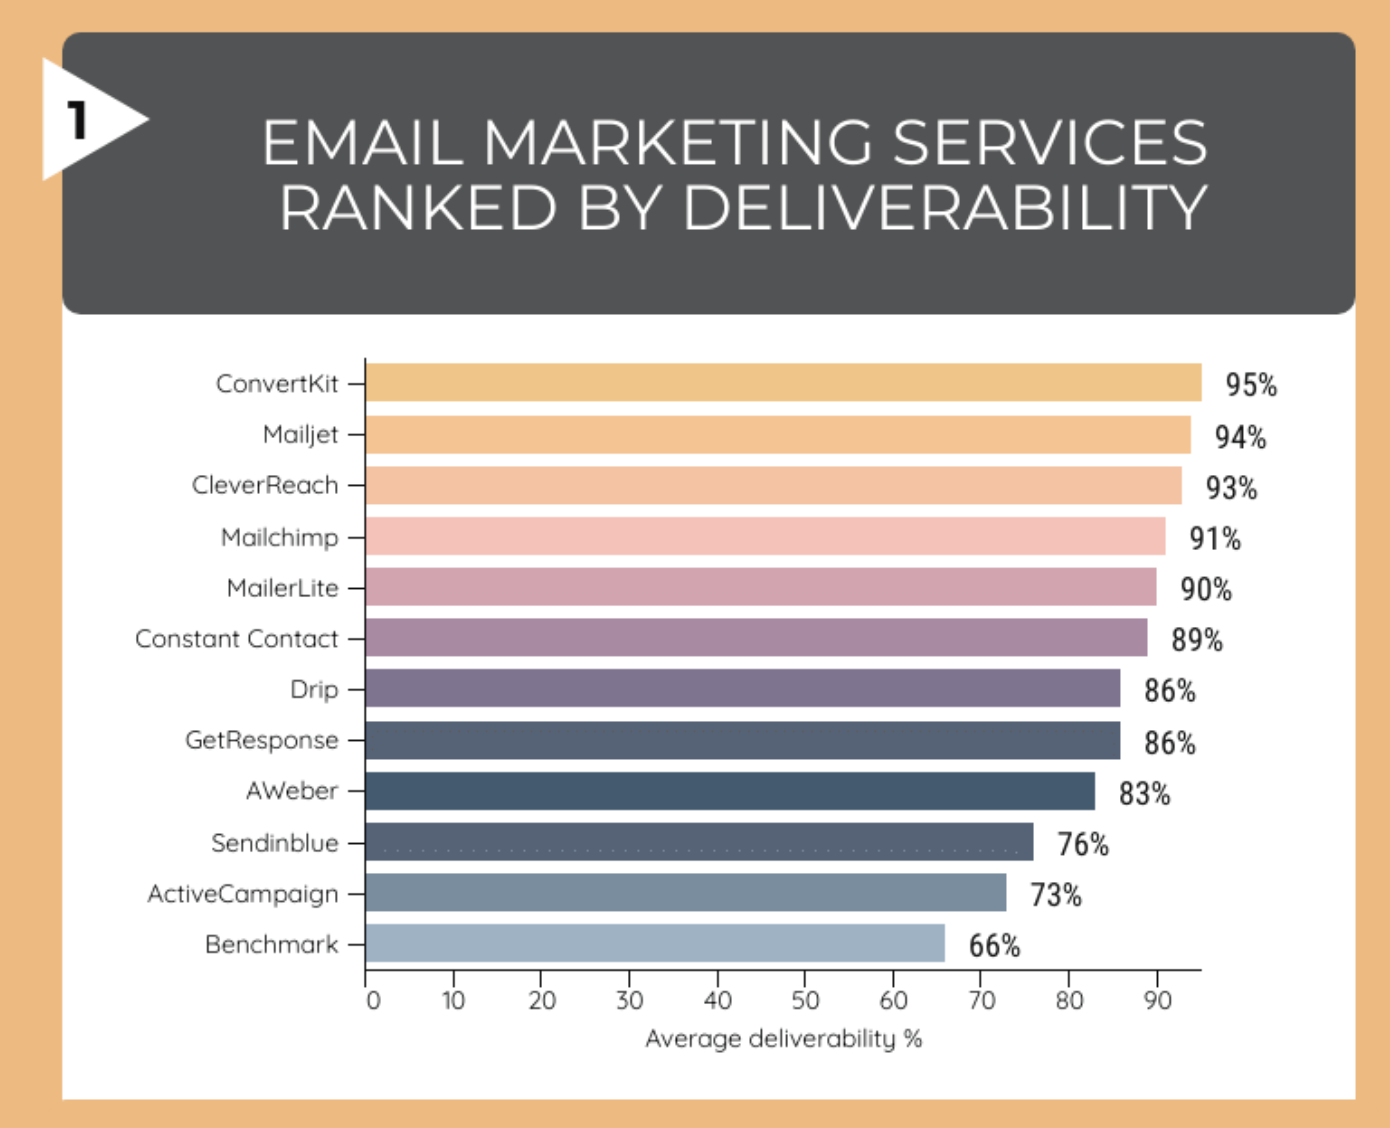 Deliverability study from EmailToolTester